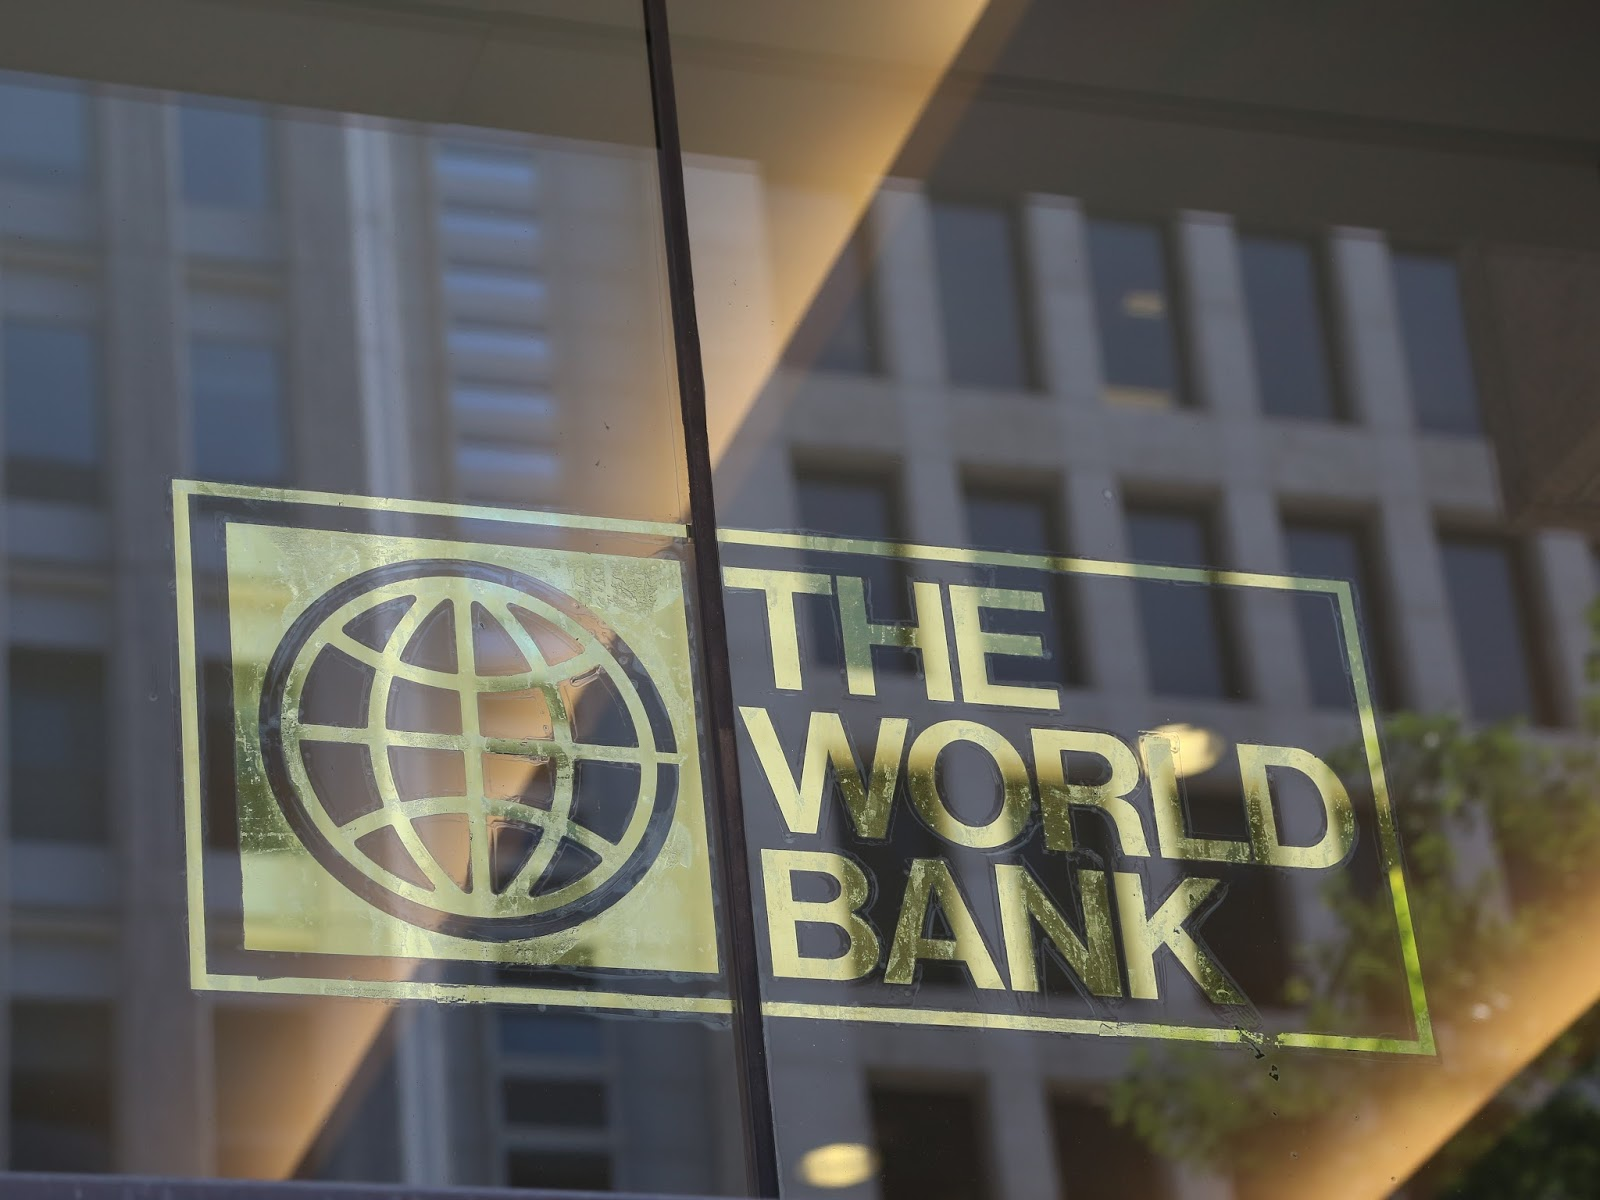 From Groningen to the World Bank